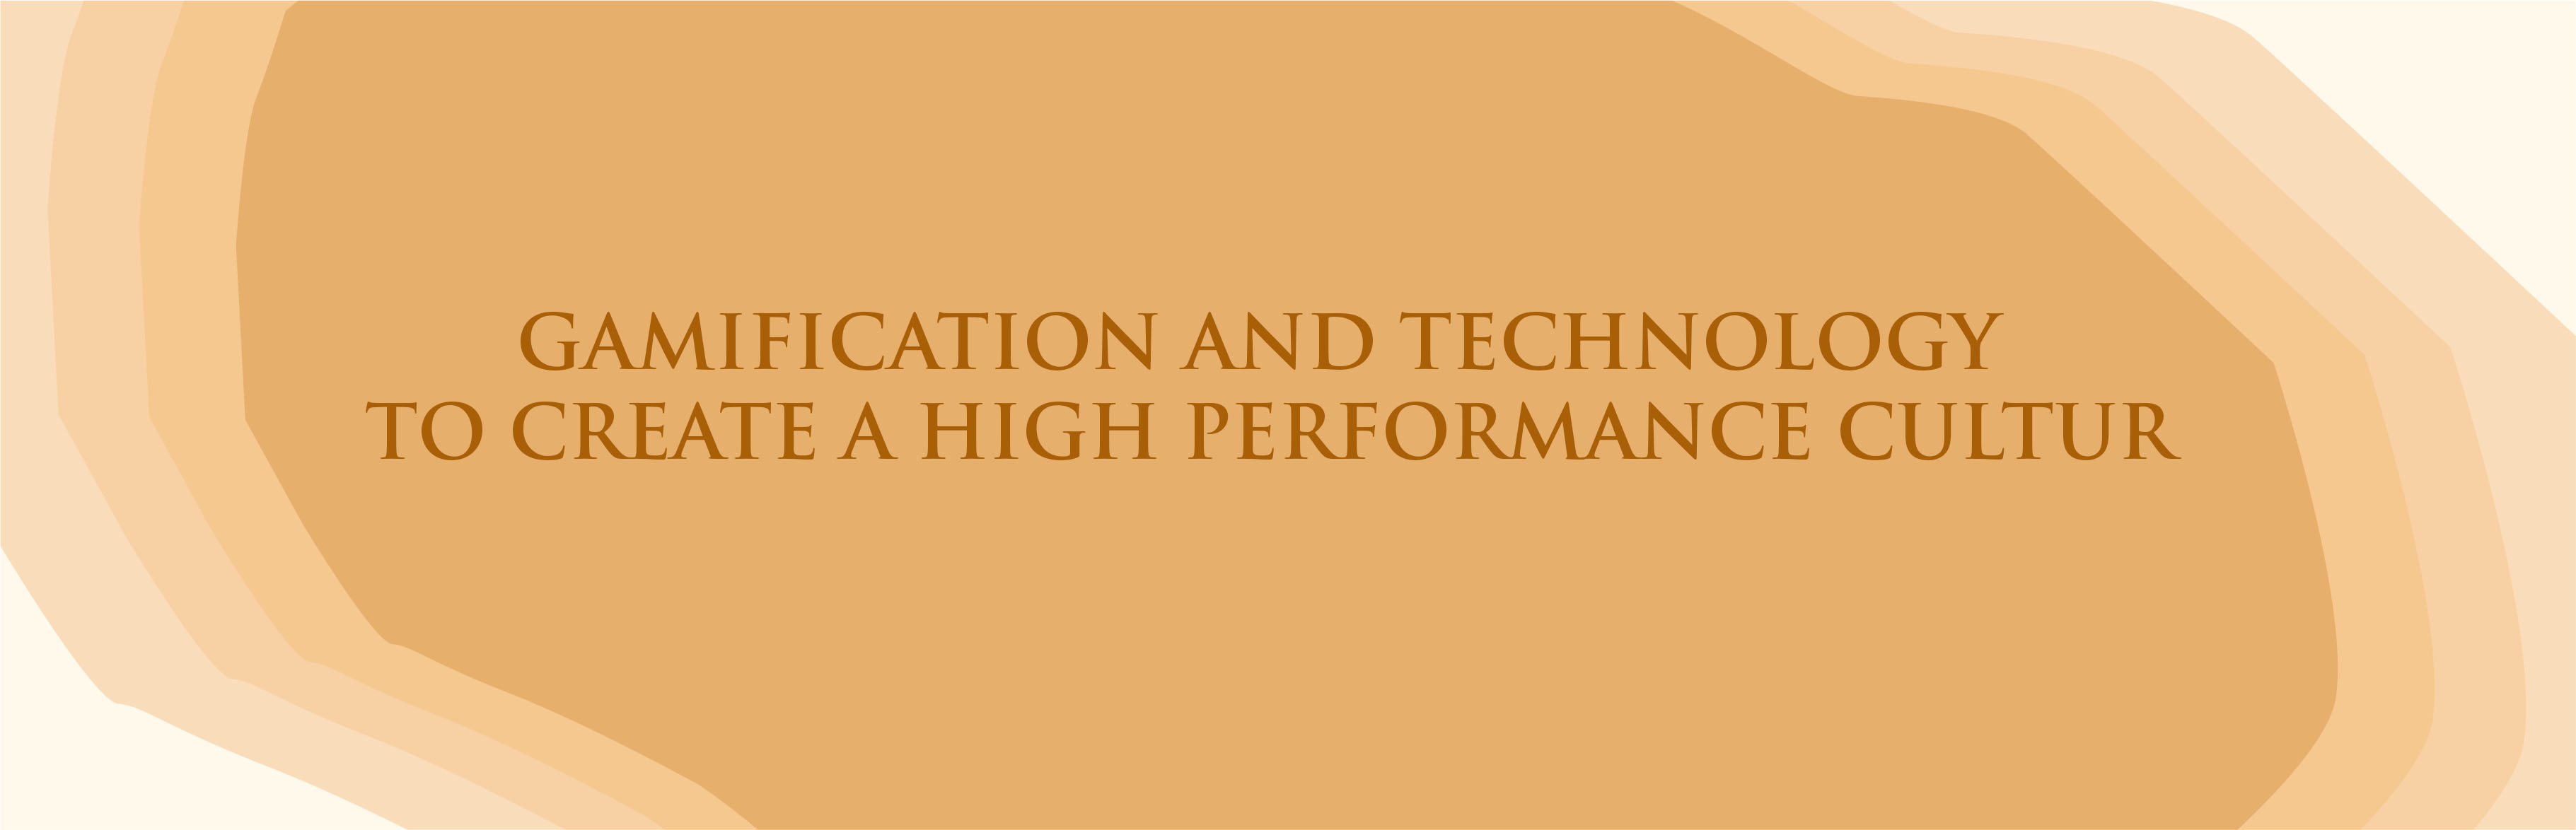 GAMIFICATION AND TECHNOLOGY TO CREATE A HIGH PERFORMANCE CULTUR